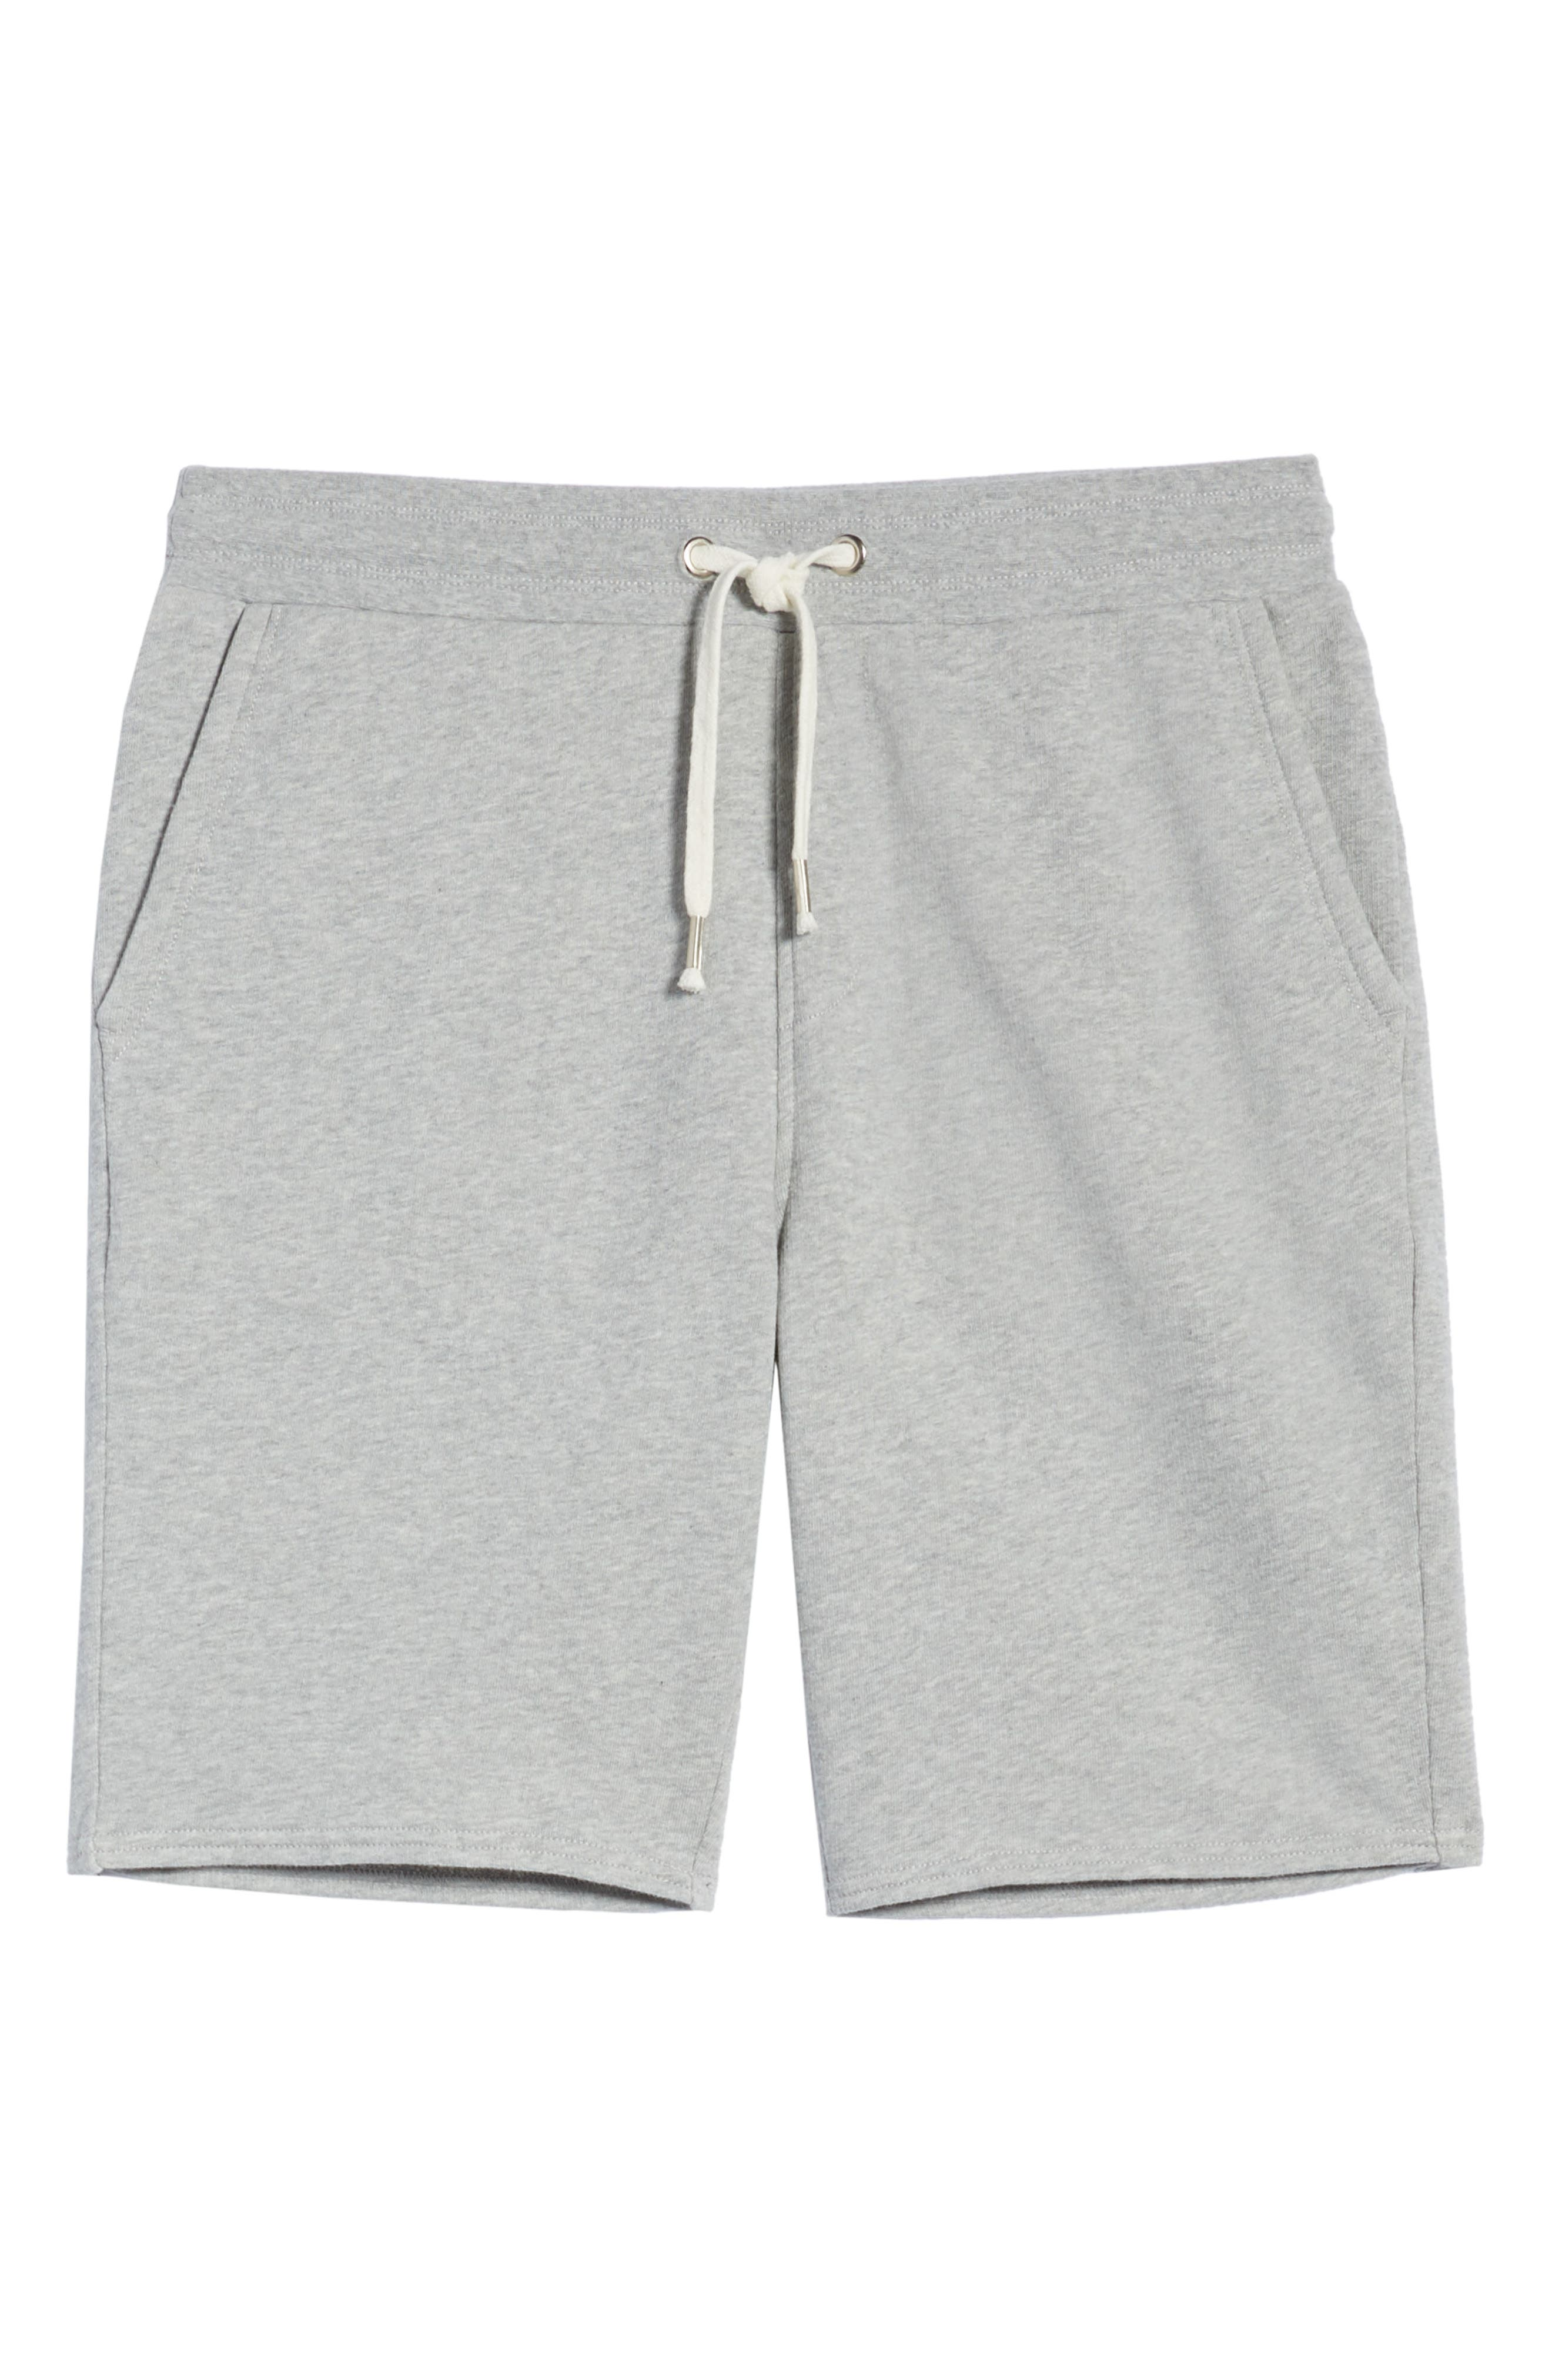 THE RAIL, Heathered Athletic Shorts, Alternate thumbnail 6, color, 050